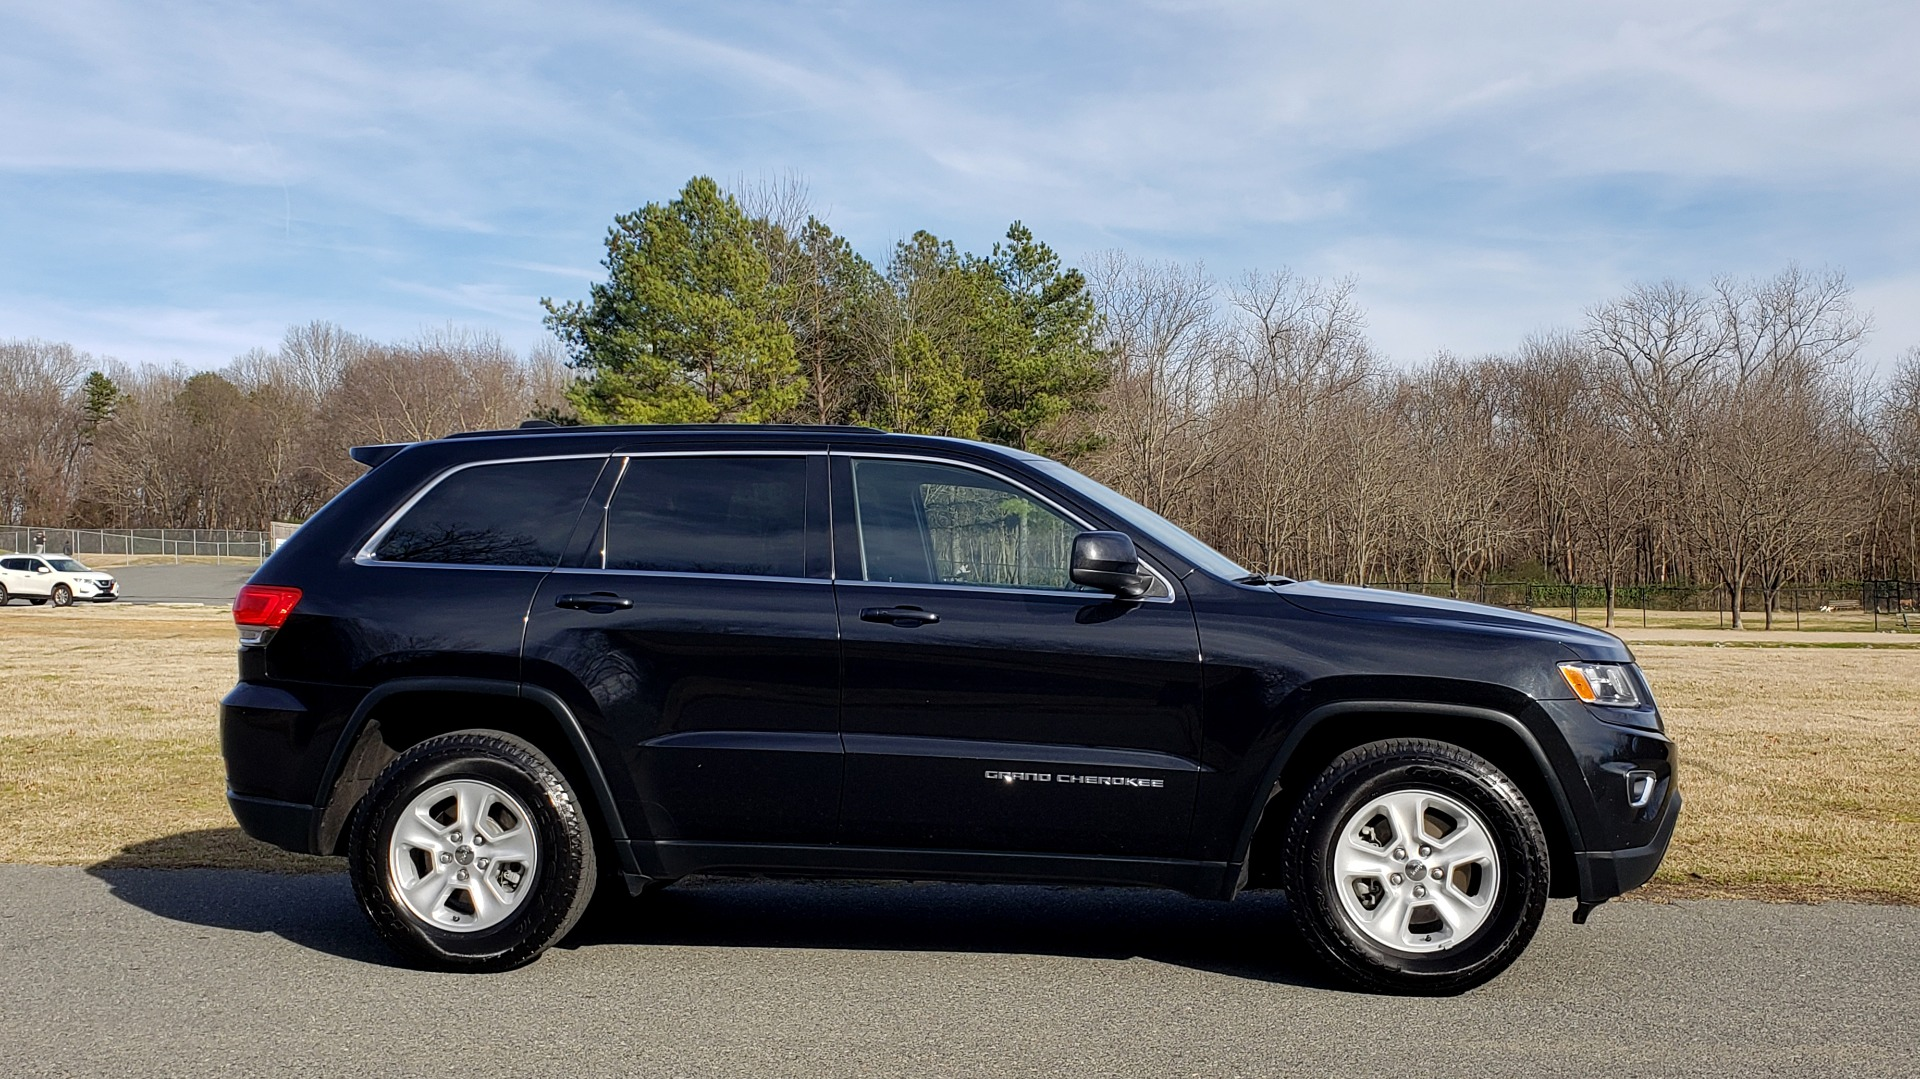 Used 2015 Jeep GRAND CHEROKEE LAREDO / 4X2 / 3.6L V6 / AUTO / 17IN WHEELS for sale Sold at Formula Imports in Charlotte NC 28227 5